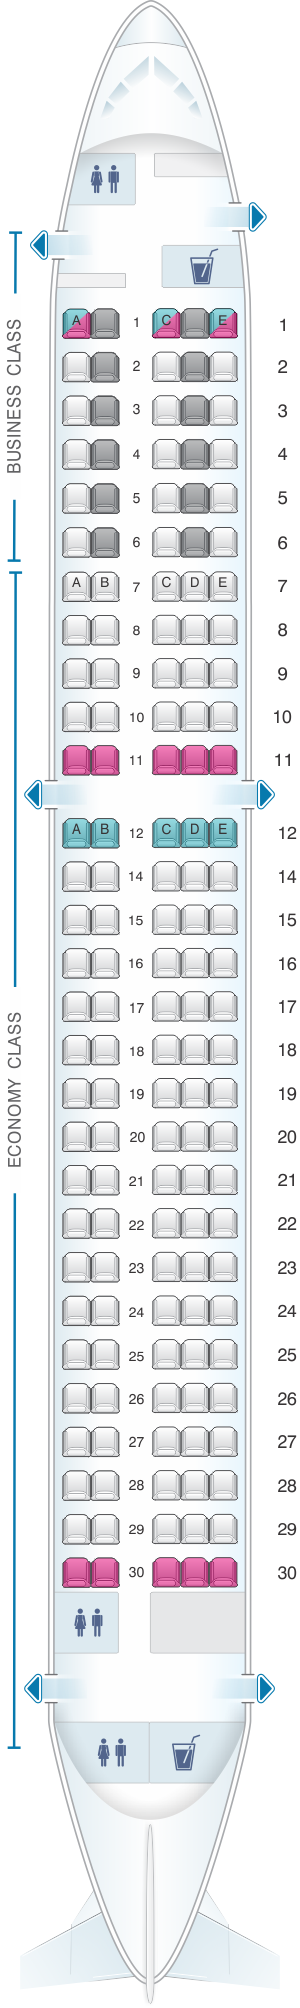 Seat Map SWISS Bombardier CS300 Malaysia airlines